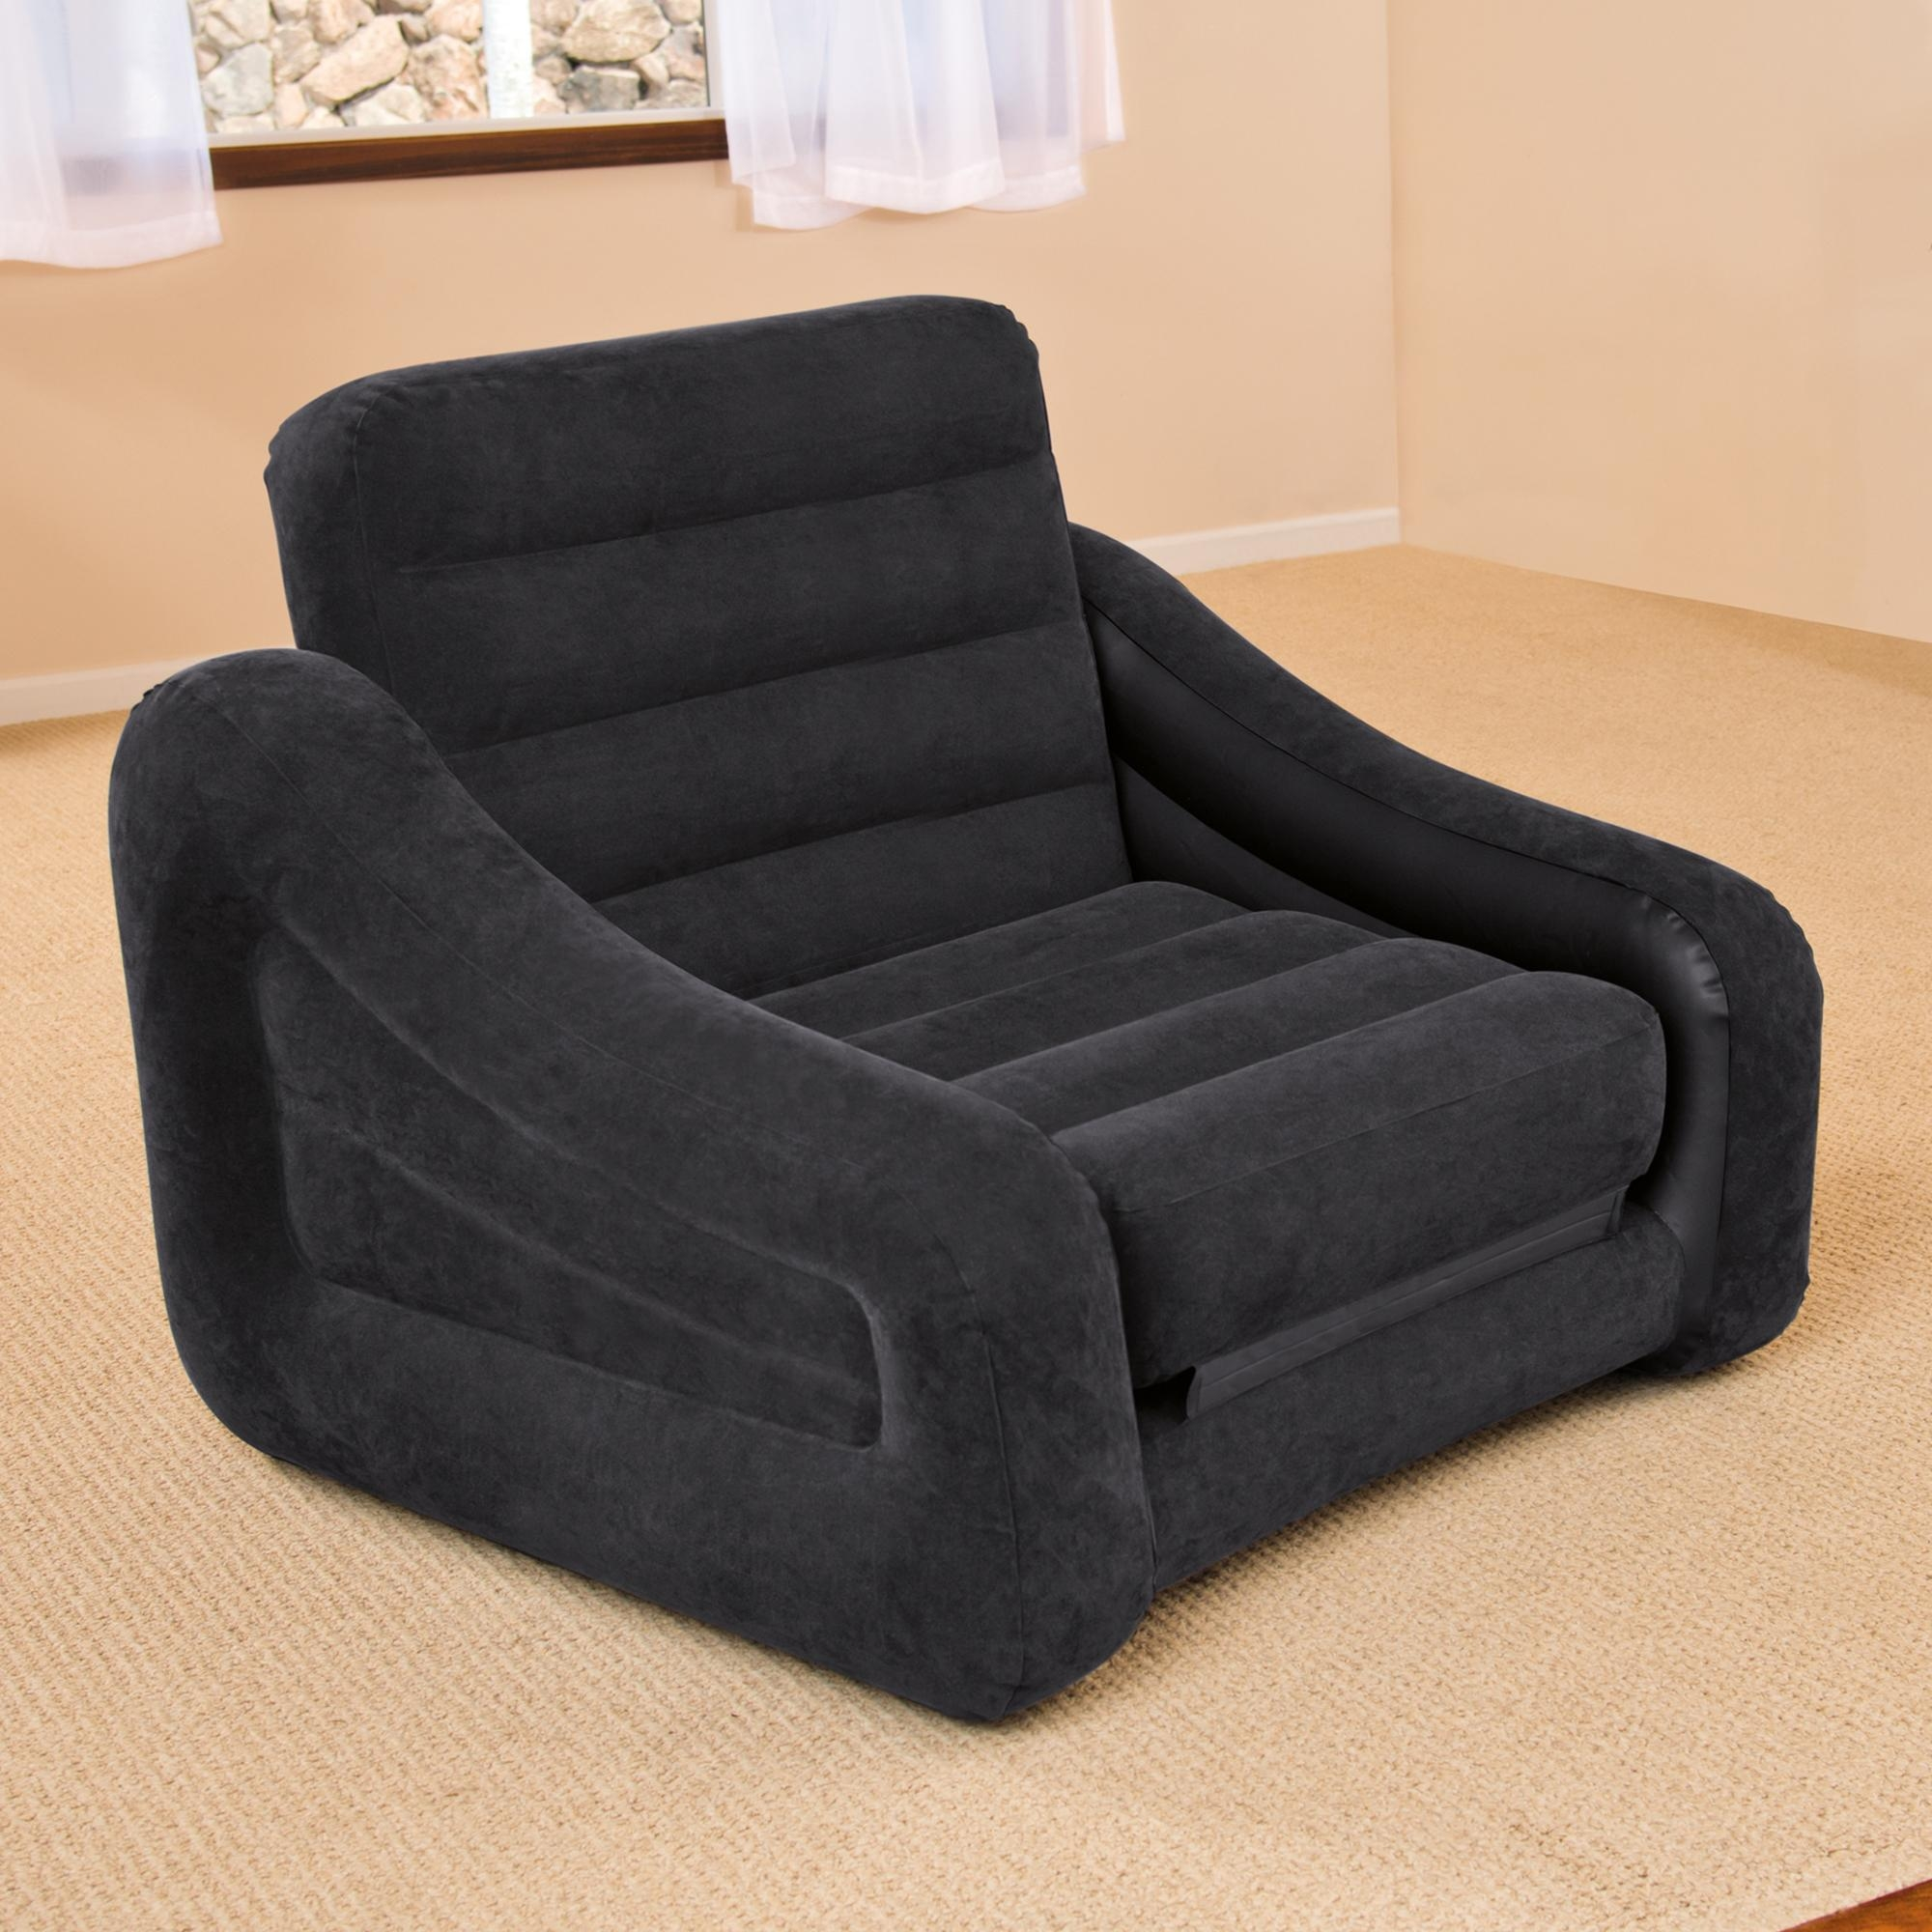 Intex Inflatable Pull Out Chair And Twin Bed Mattress Sleeper Regarding Intex Air Sofa Beds (Image 12 of 20)